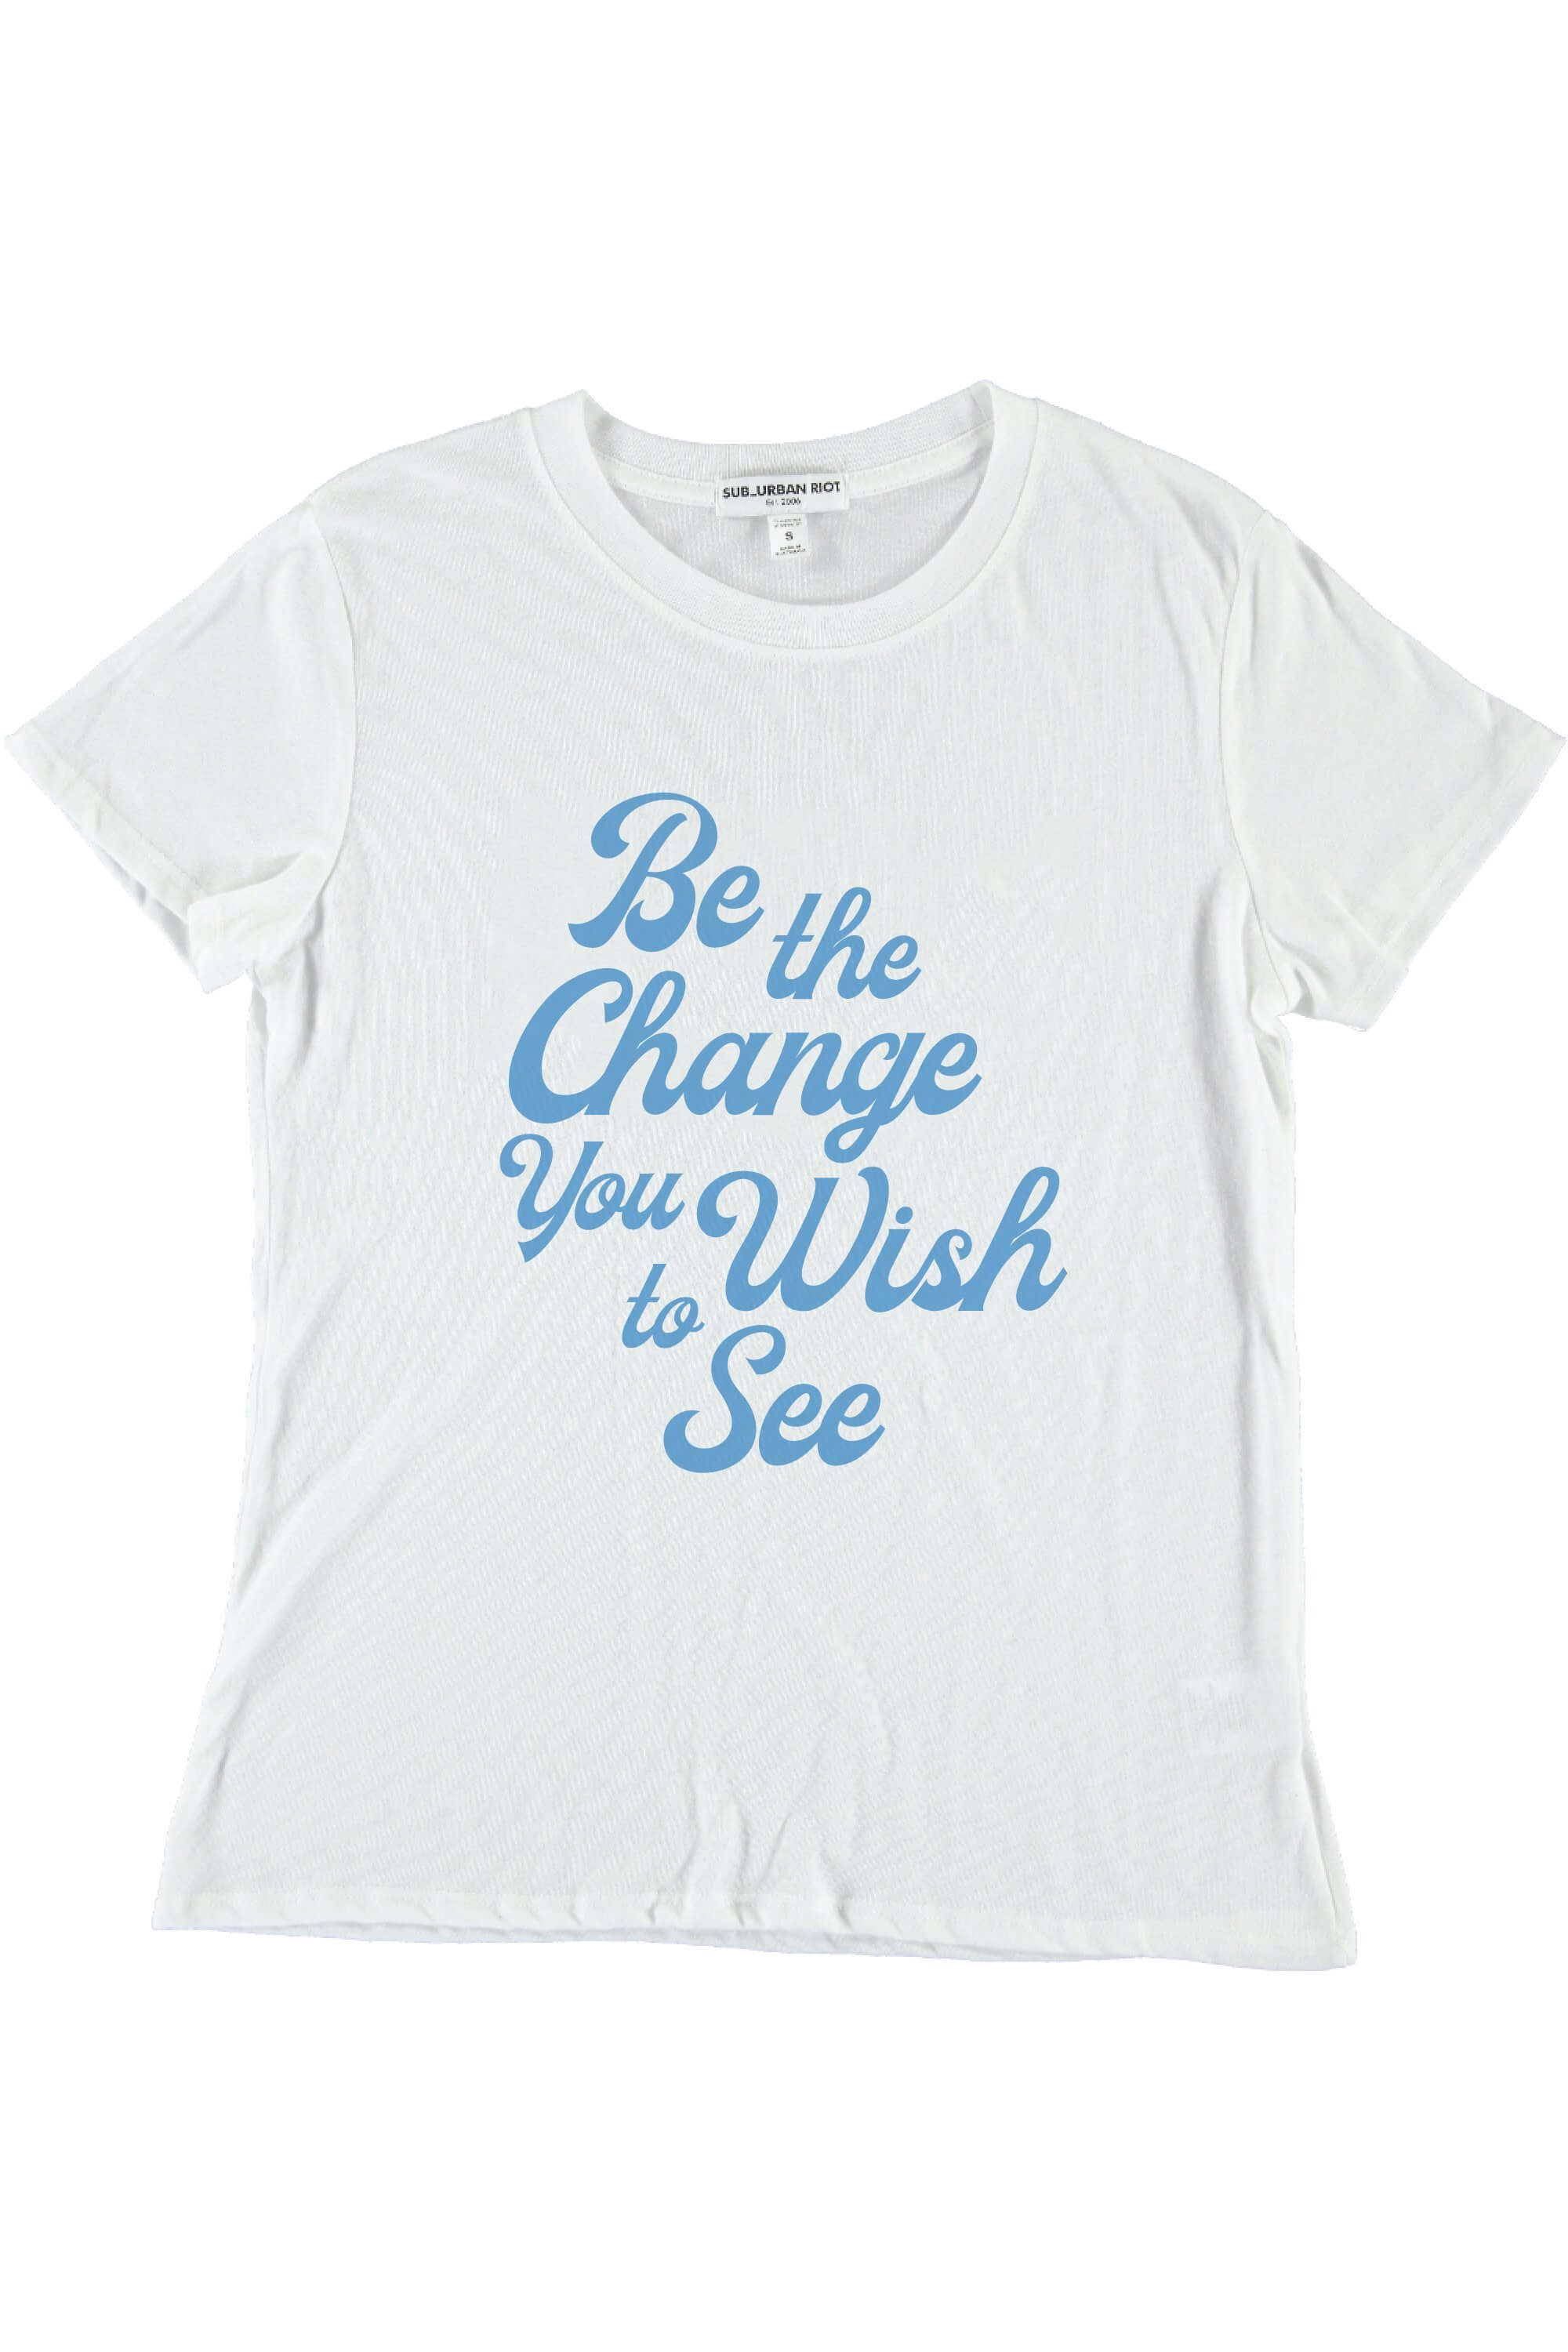 BE THE CHANGE YOUTH SIZE LOOSE TEE